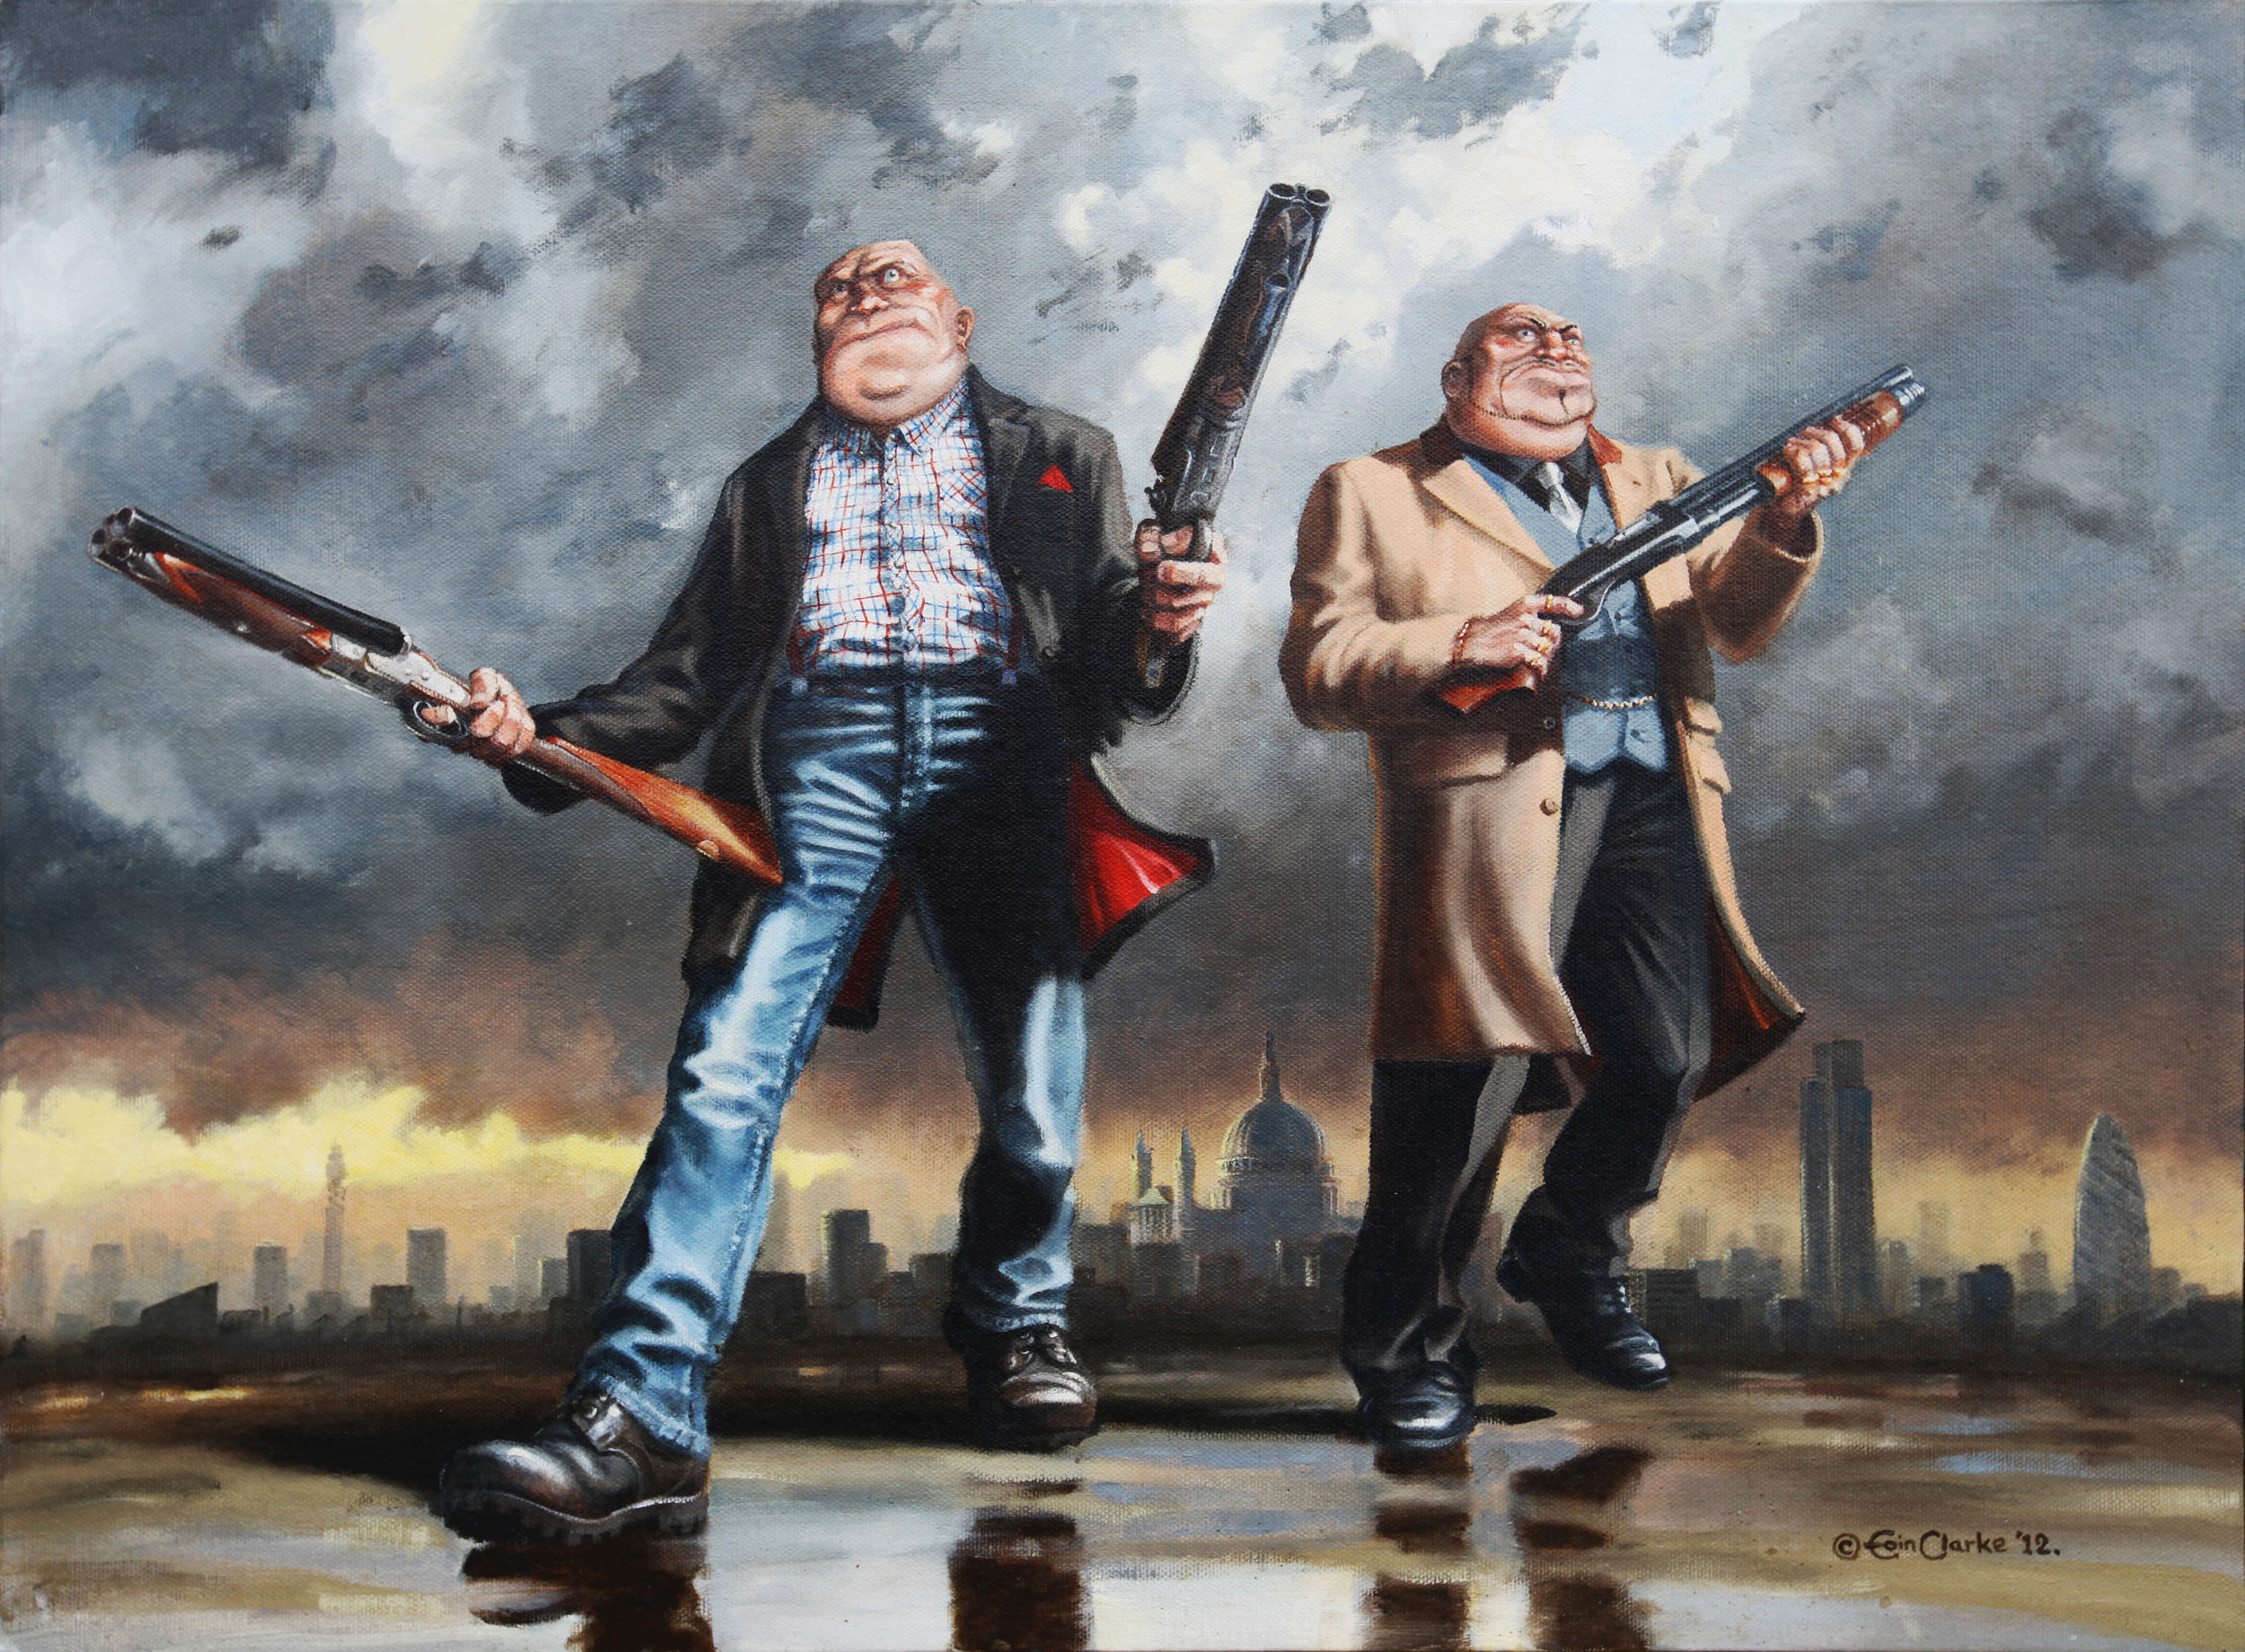 The Bruvs in an oil painting